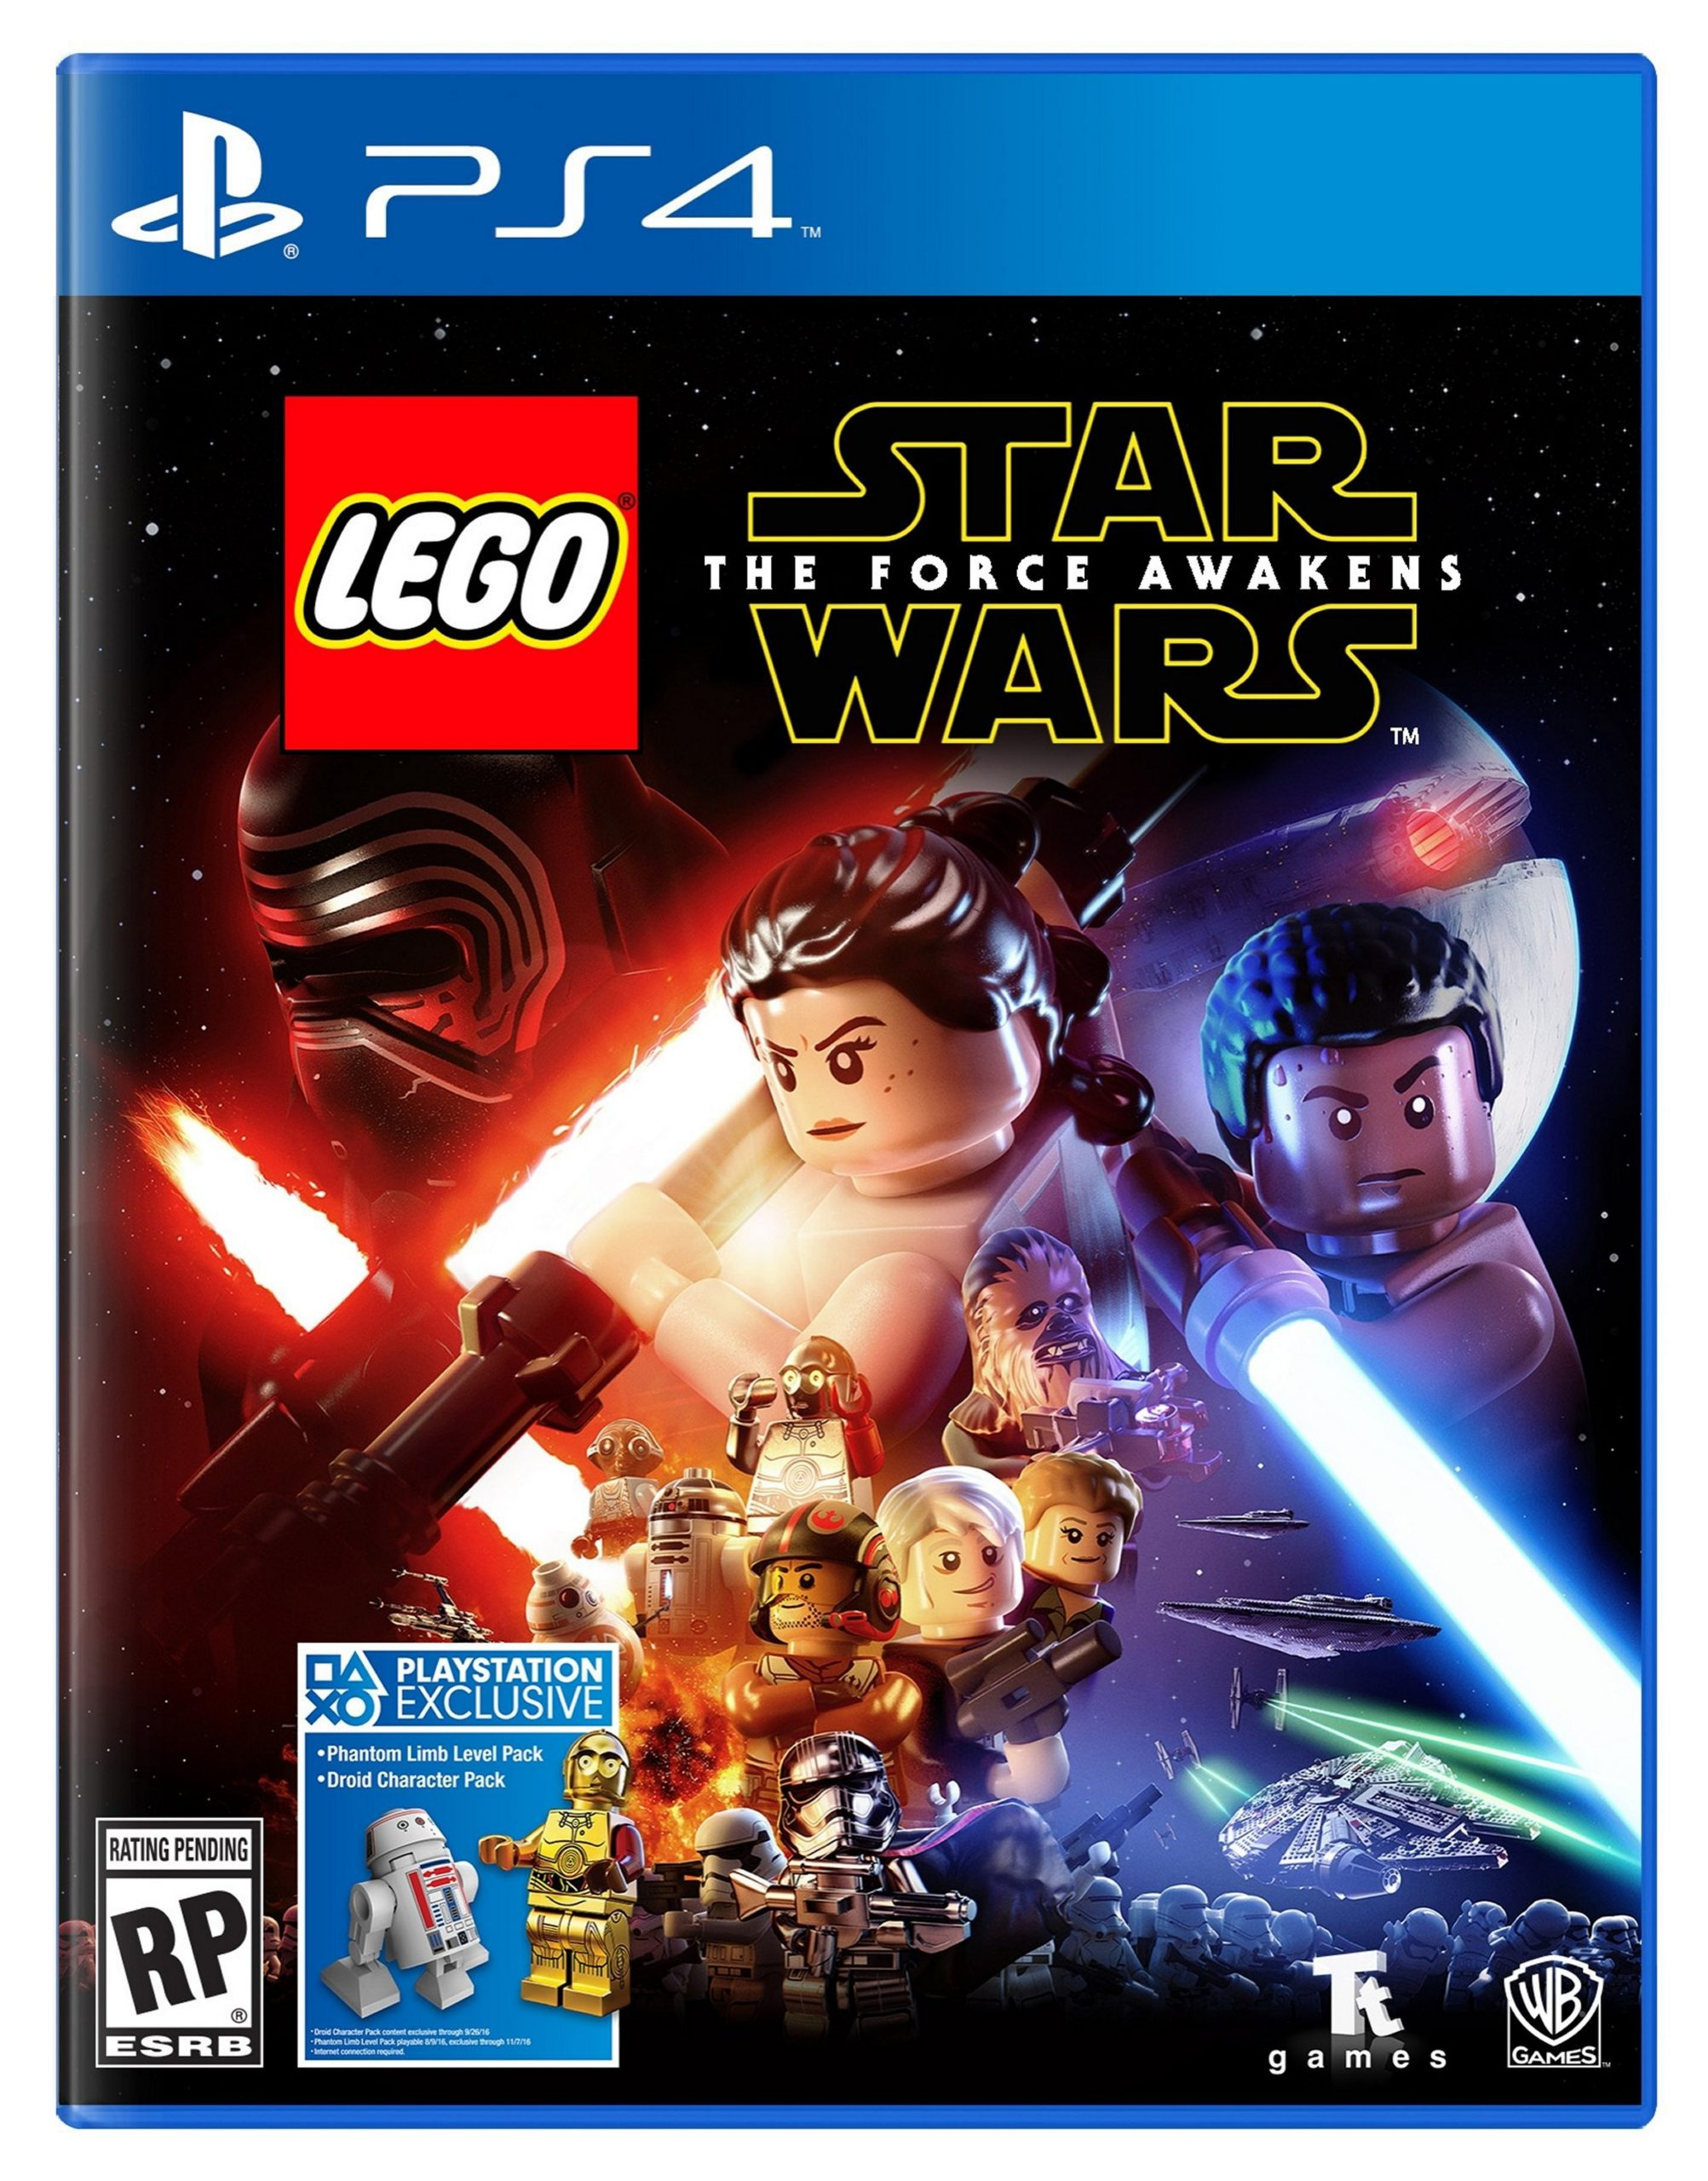 lego 5005139 star wars the force awakens playstation 4 video game scaled